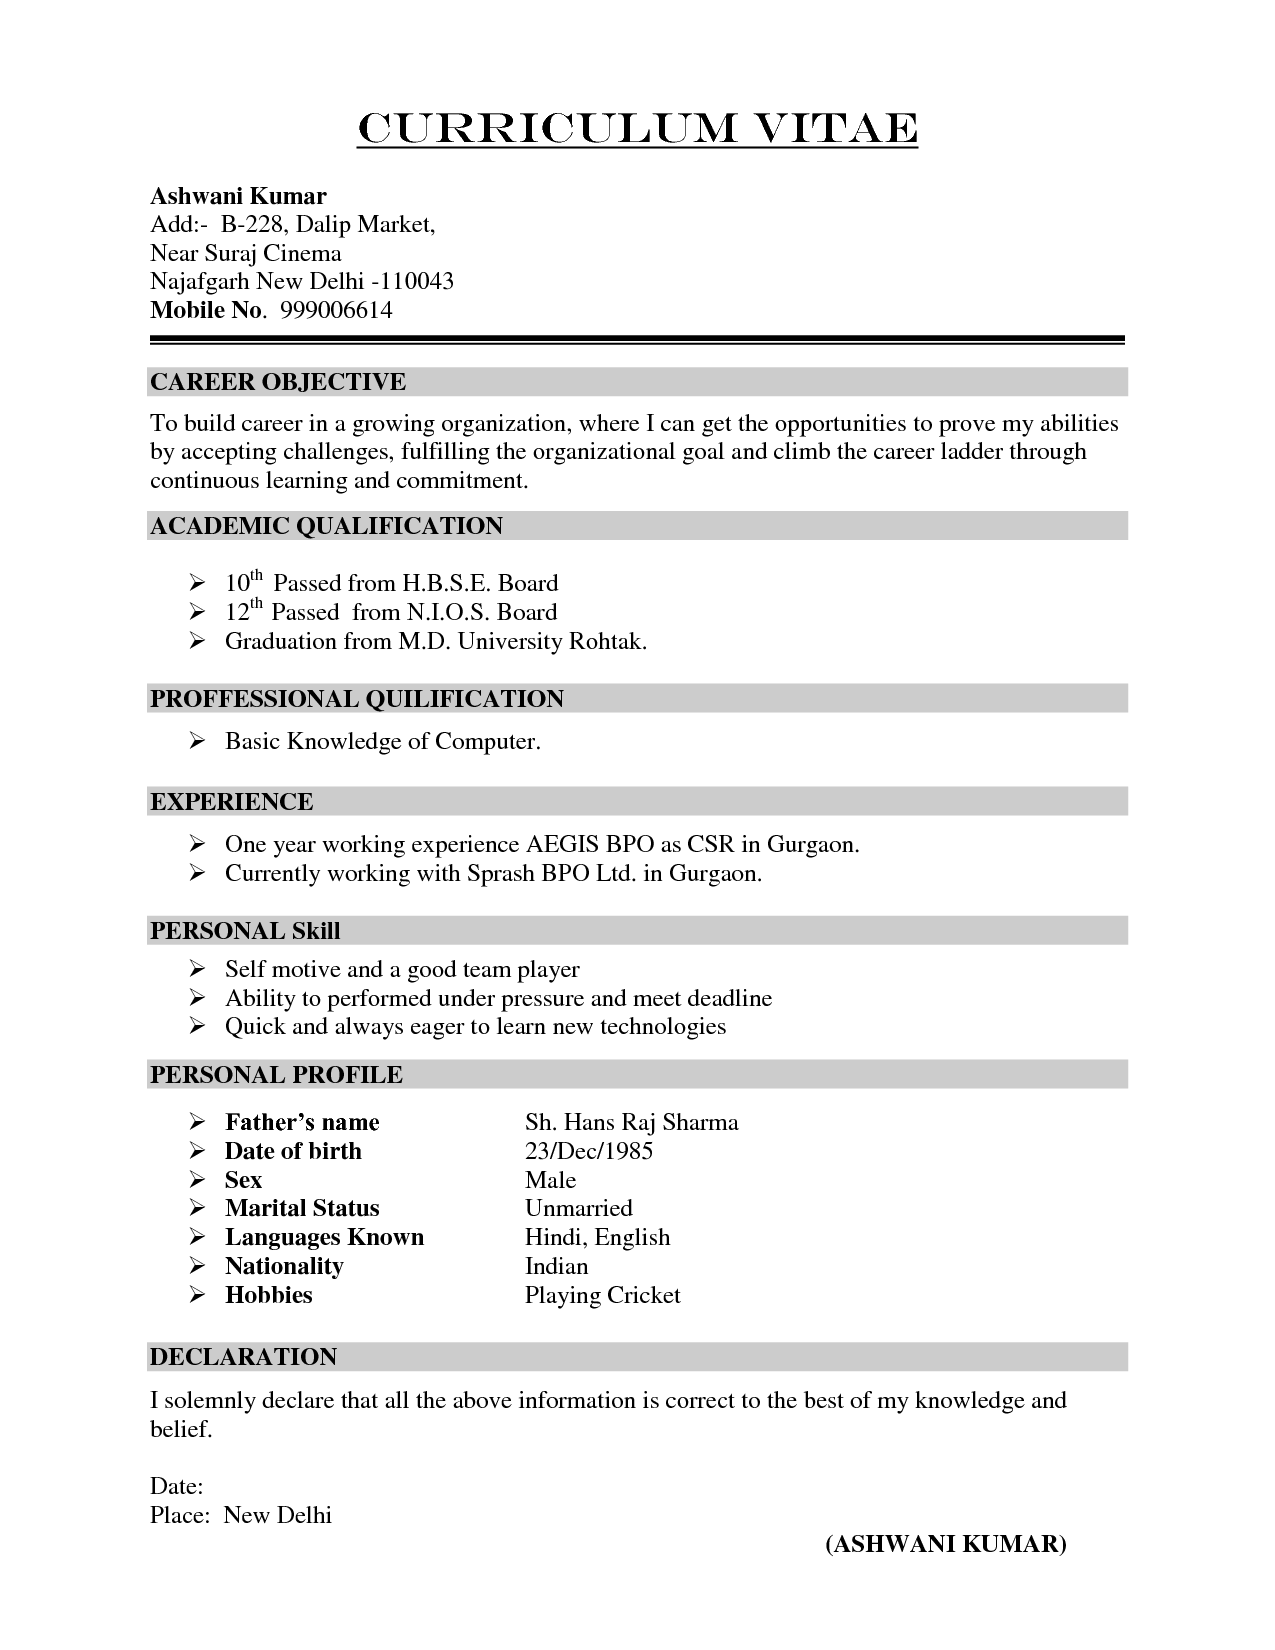 how to write a cv resume tk category curriculum vitae